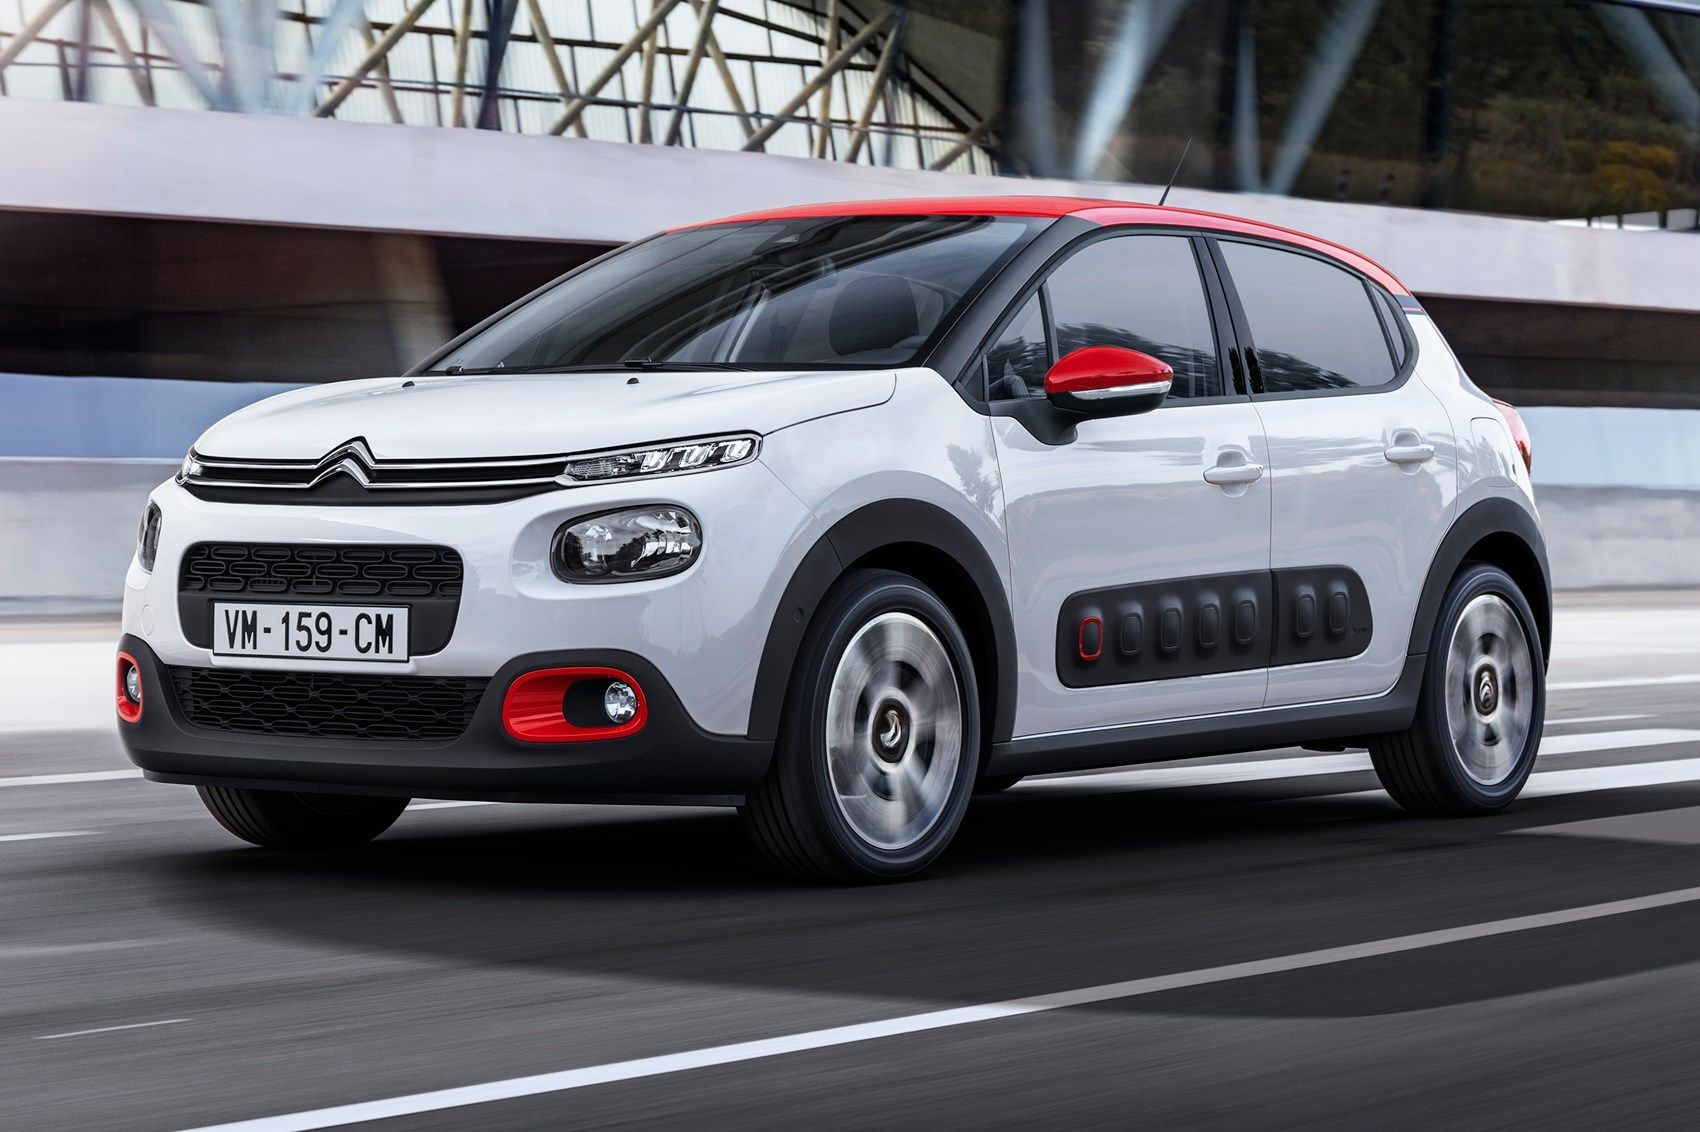 New 2017 Citroen C3 Revealed It S Cactus Take 2 Citroen C3 Citroen Car Citroen